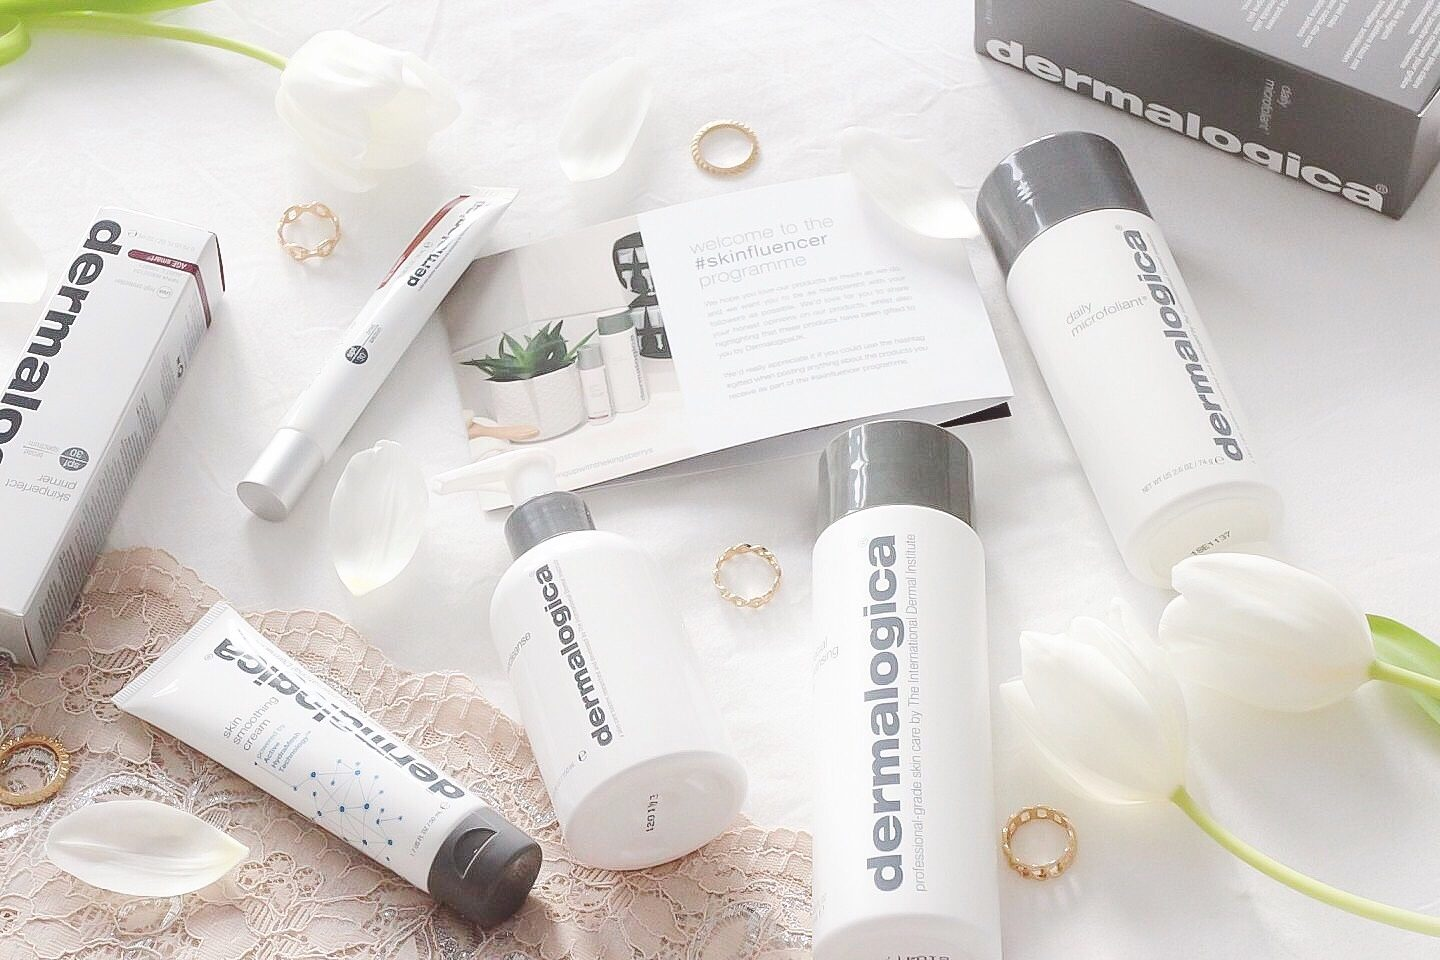 Dermalogica Products Review